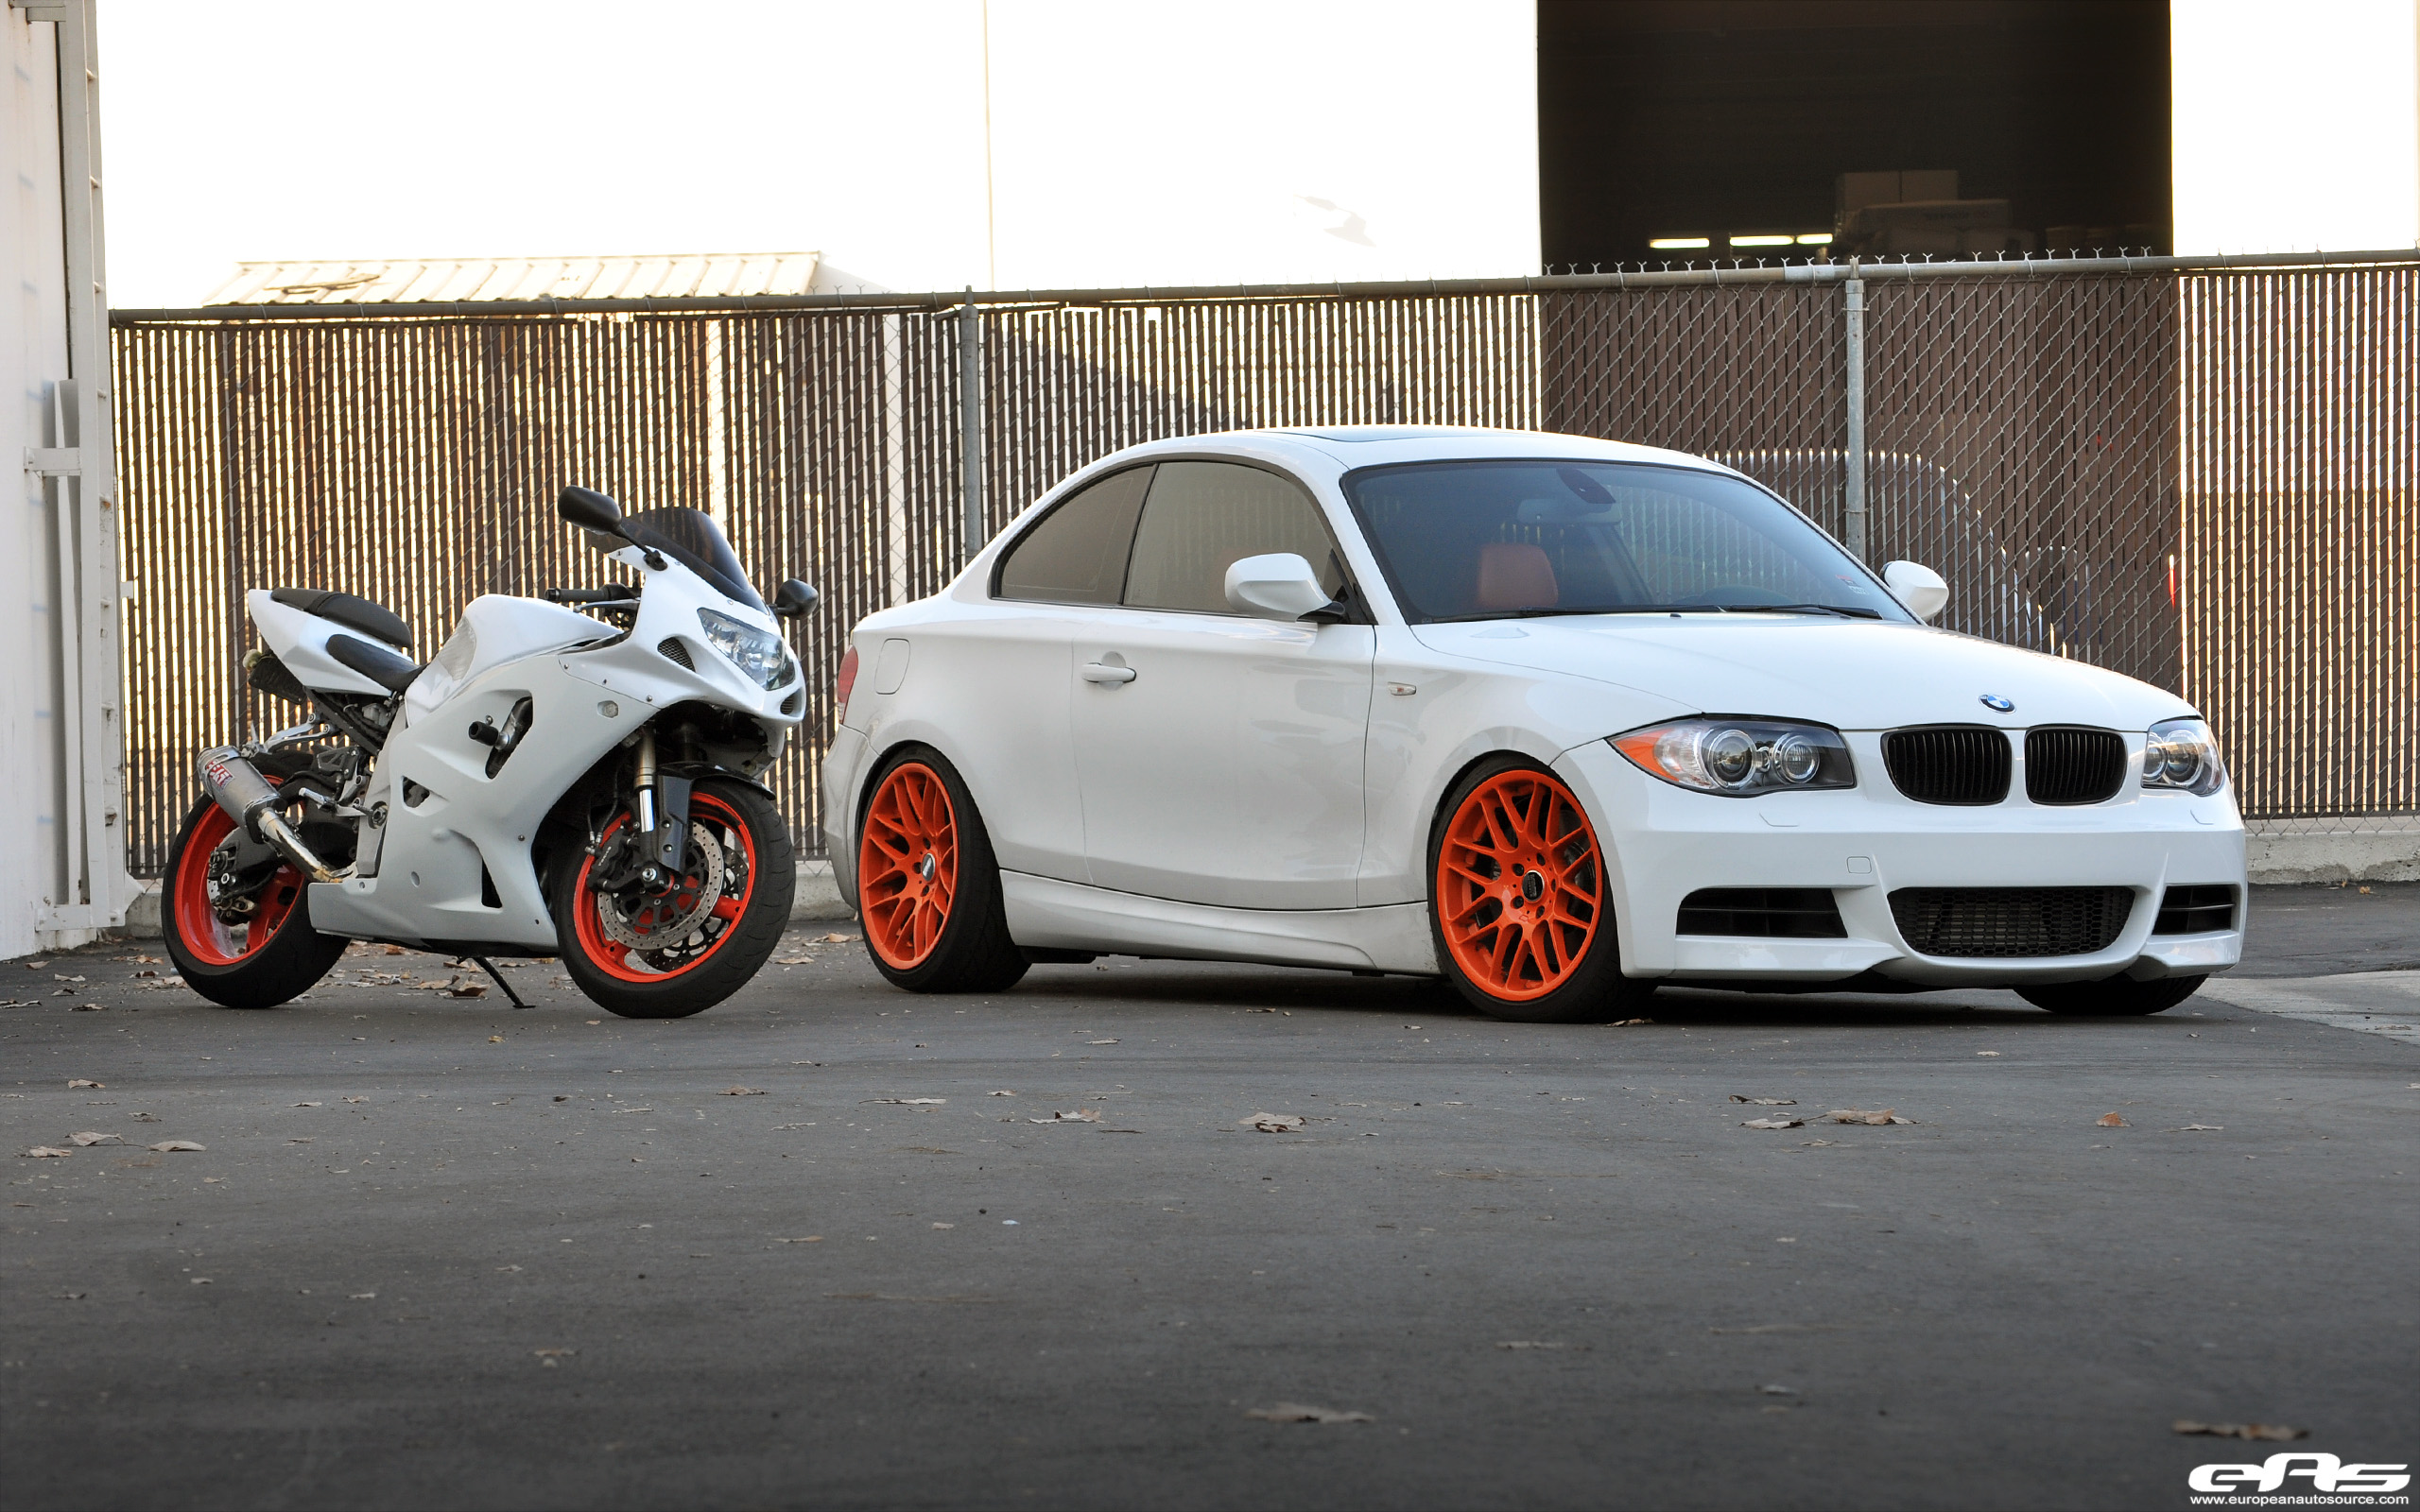 The wheels on this car are the 18 vmr vb3s in a custom orange powdercoat finish